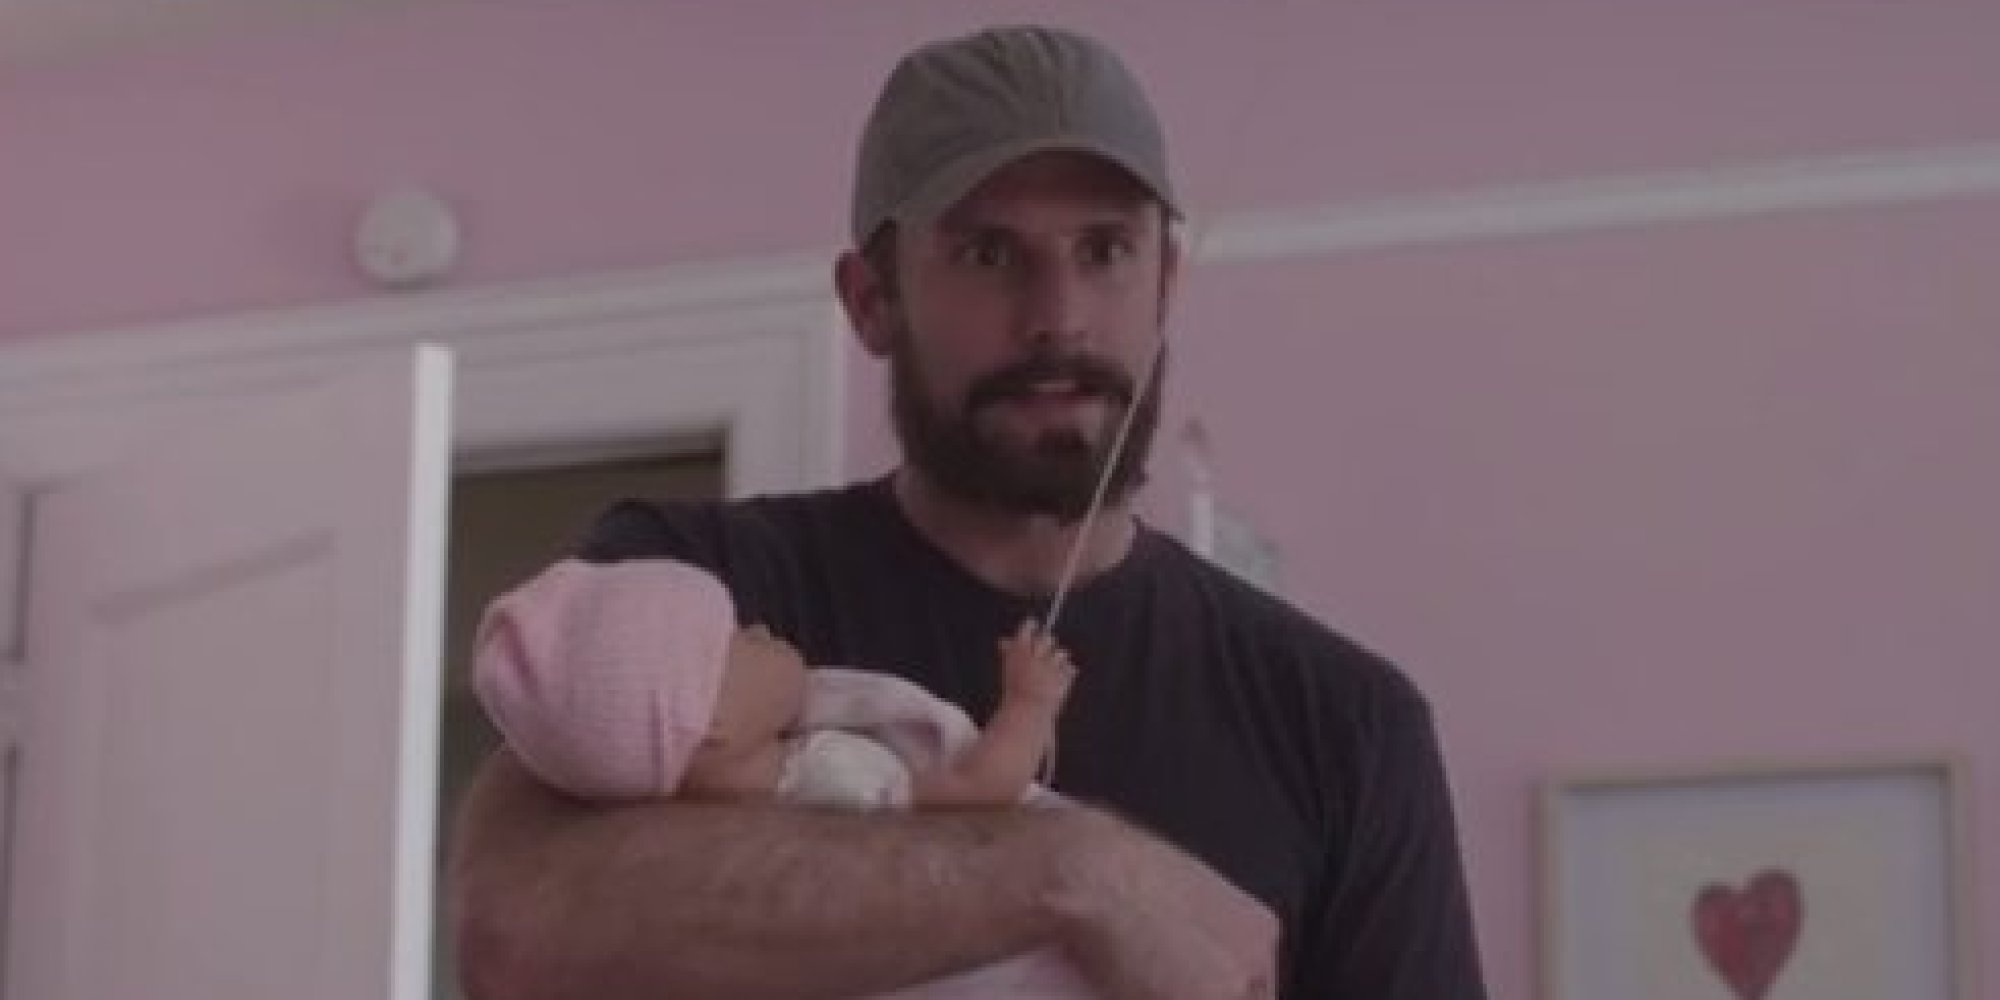 o AMERICAN SNIPER BABY facebook the baby in 'american sniper' was even more fake than we thought